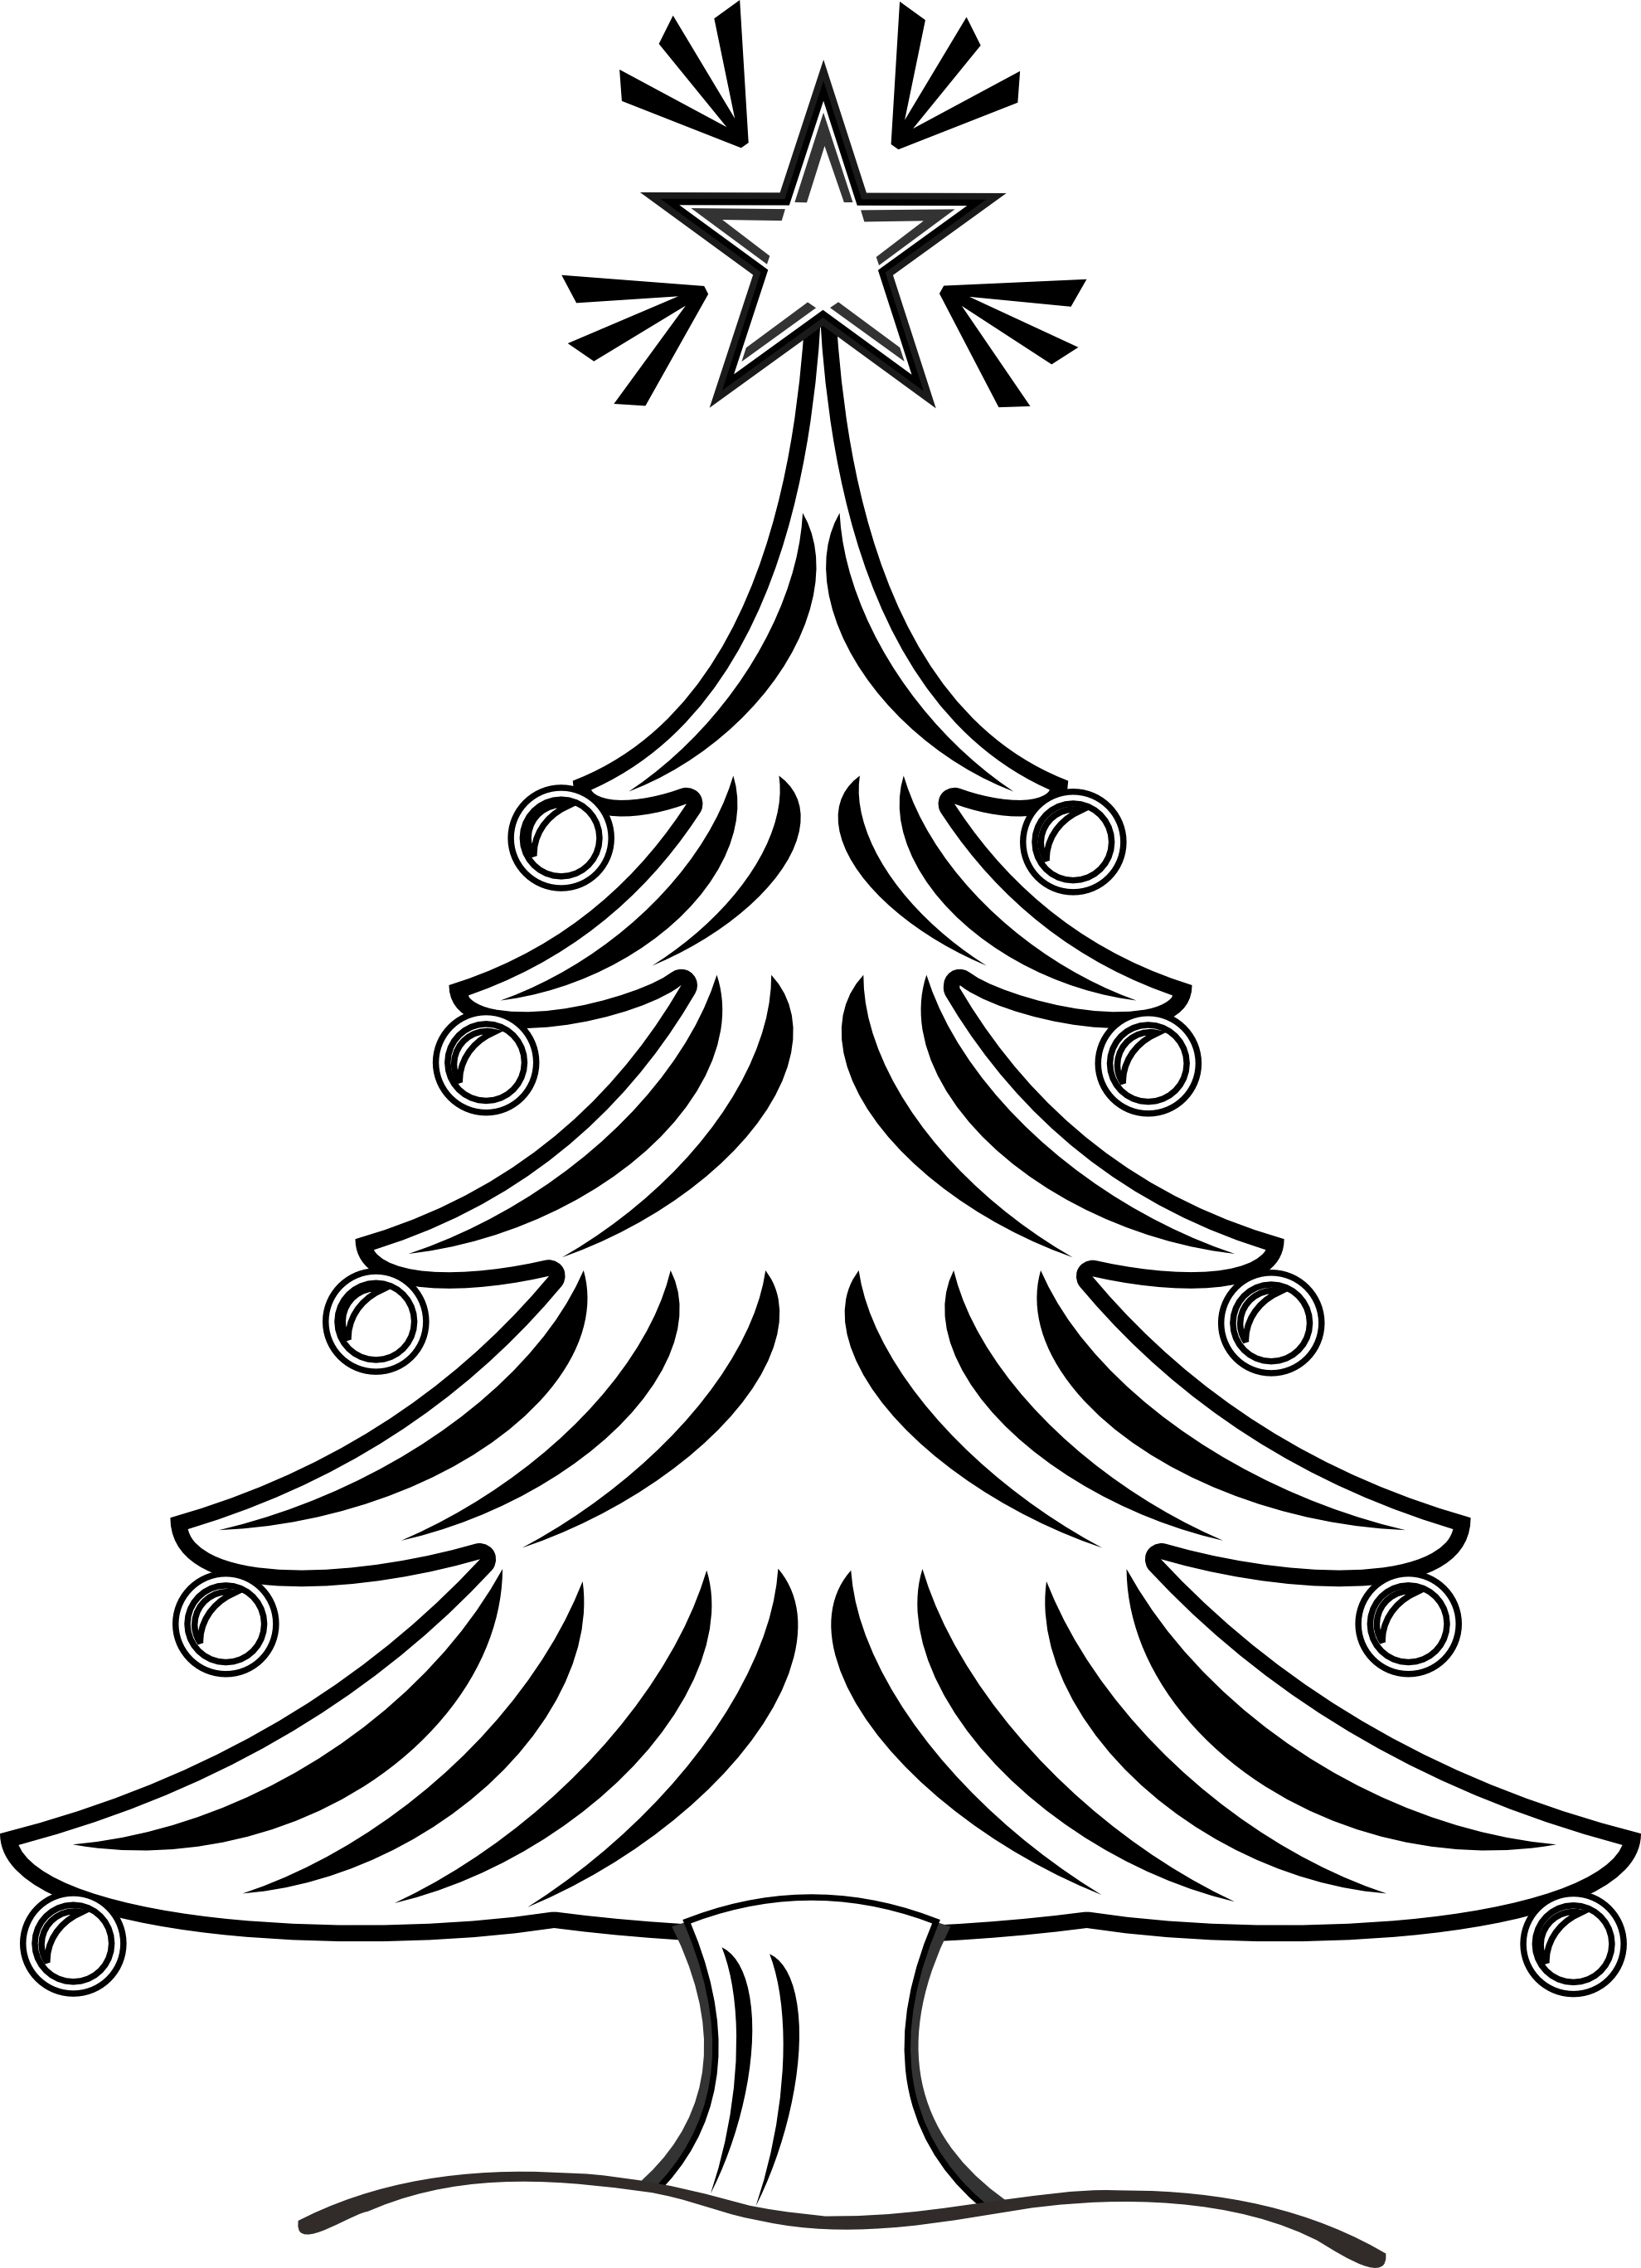 Pin By Sandy Morgan On Sketches And Drawings Christmas Tree Clipart Tree Clipart Clipart Black And White